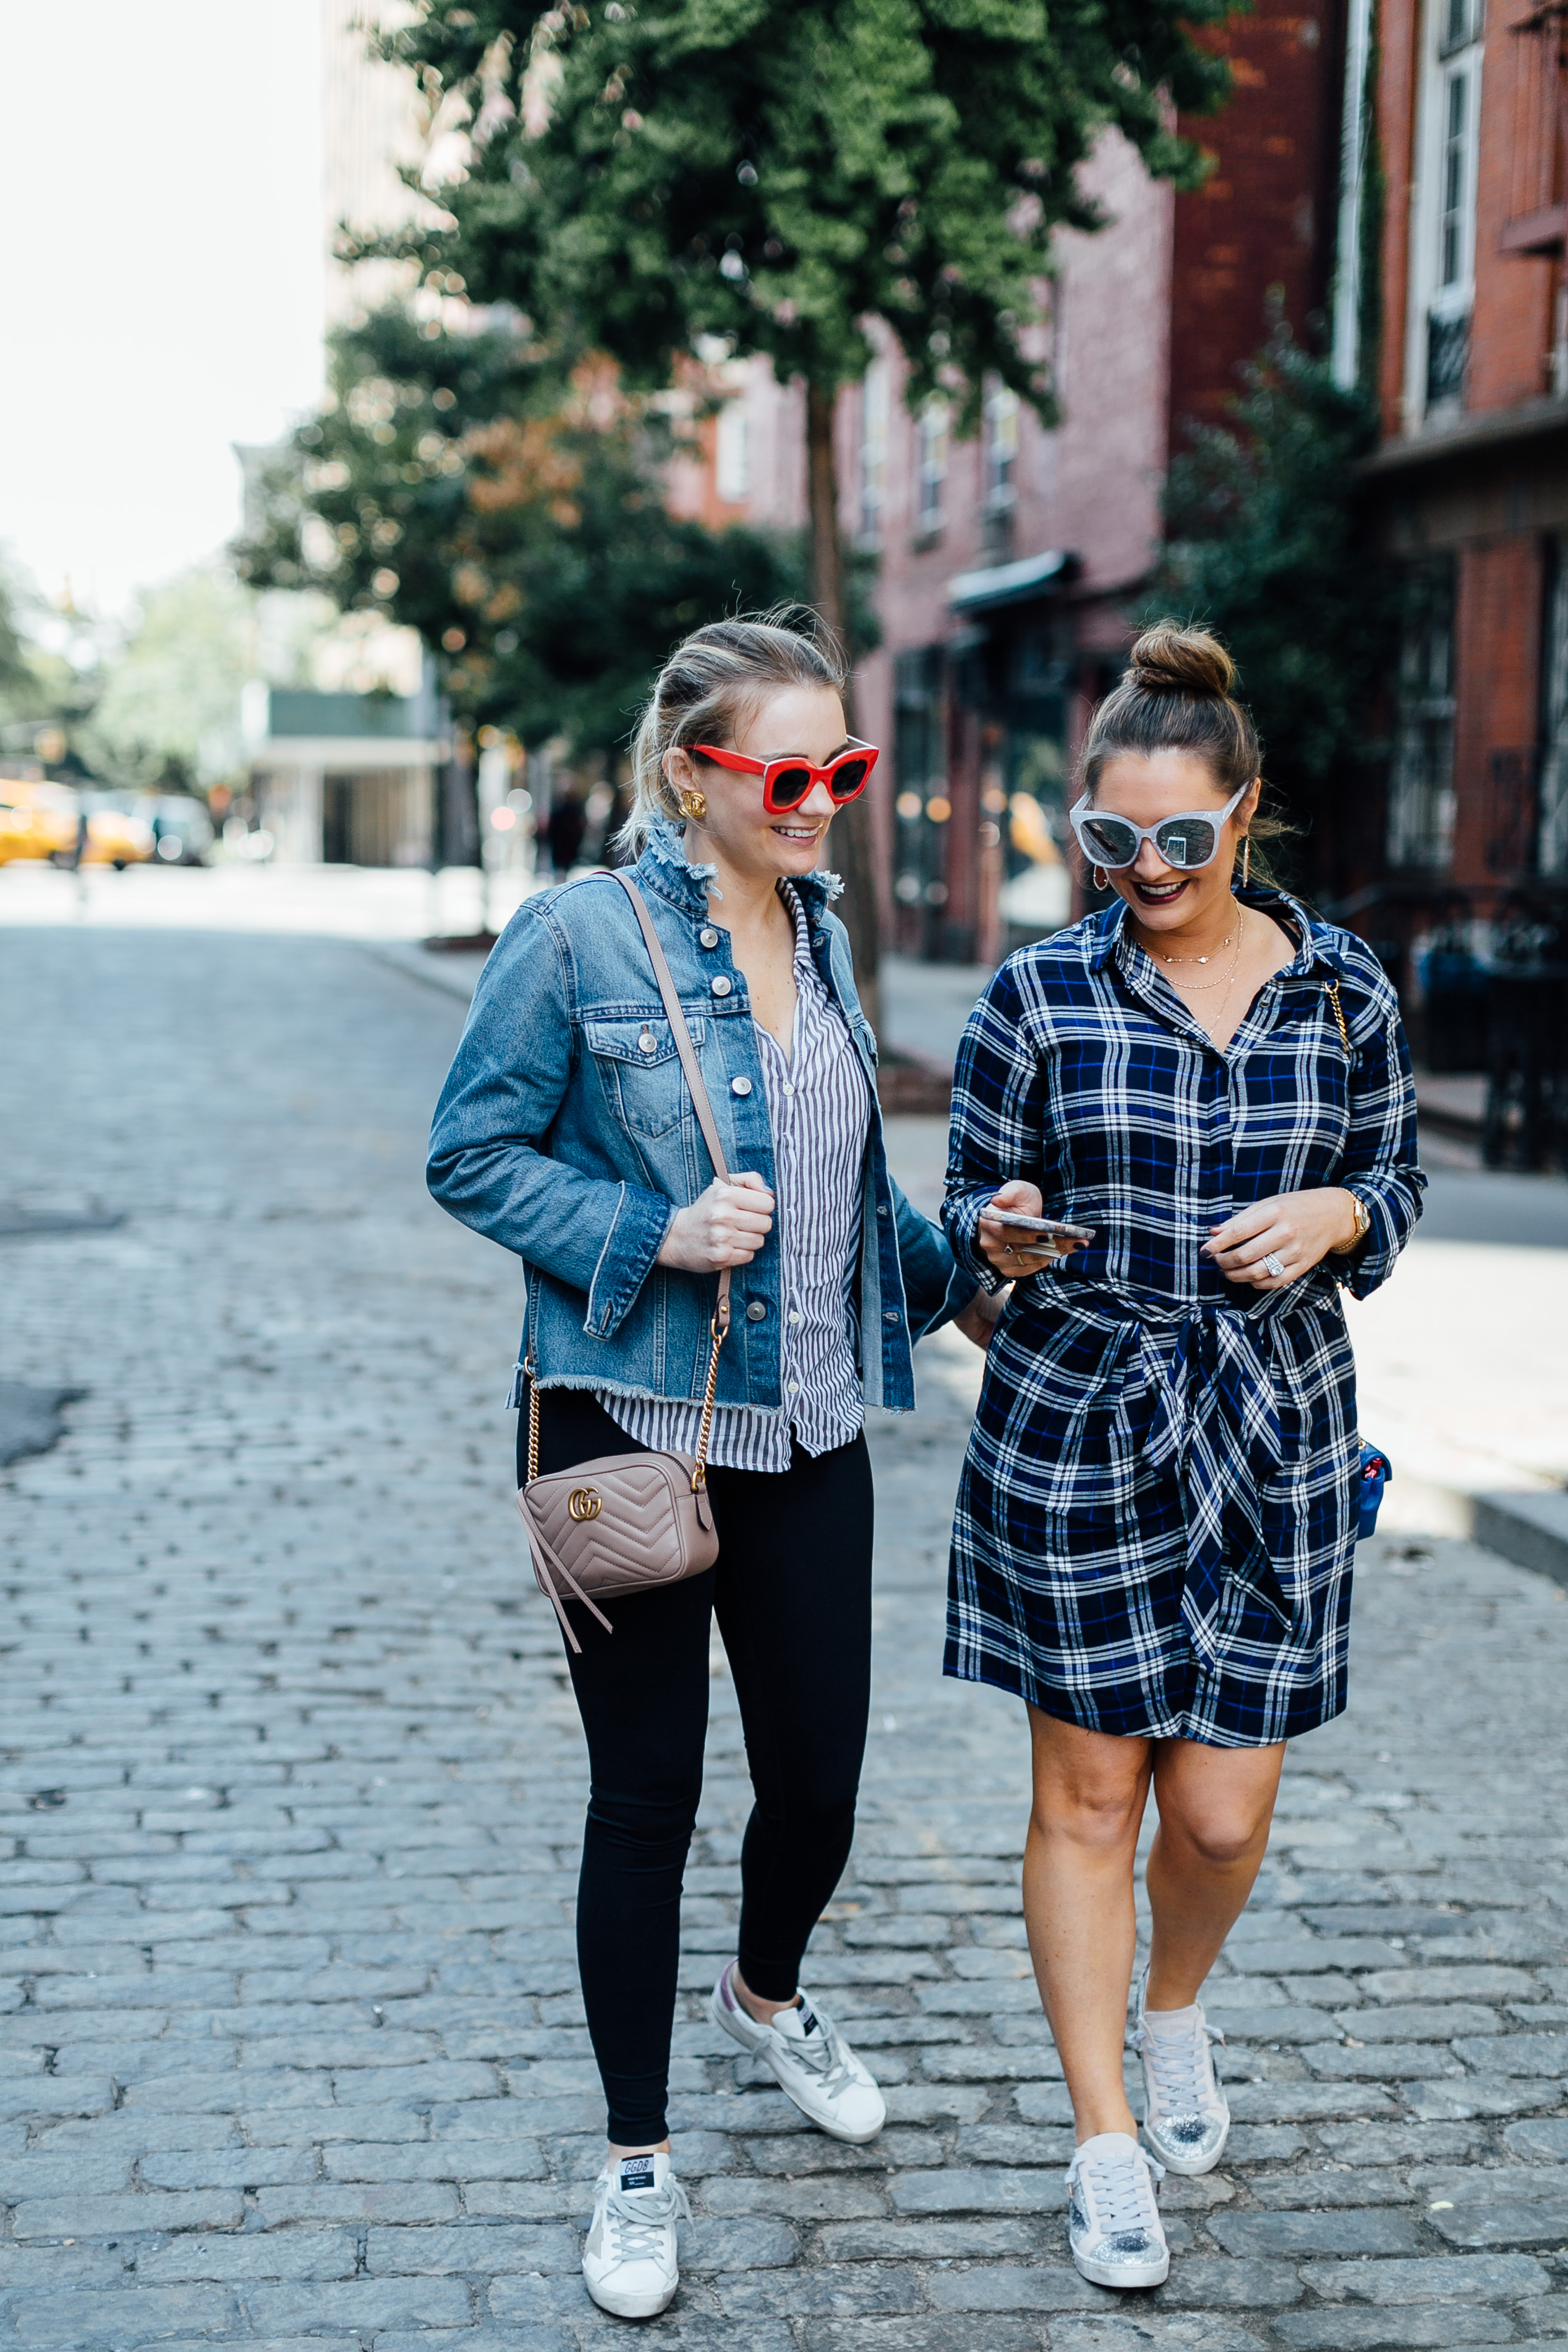 Memphis Fashion Blogger shares a NYFW Recap and why you should absolutely go to New York Fashion Week if you're a blogger.